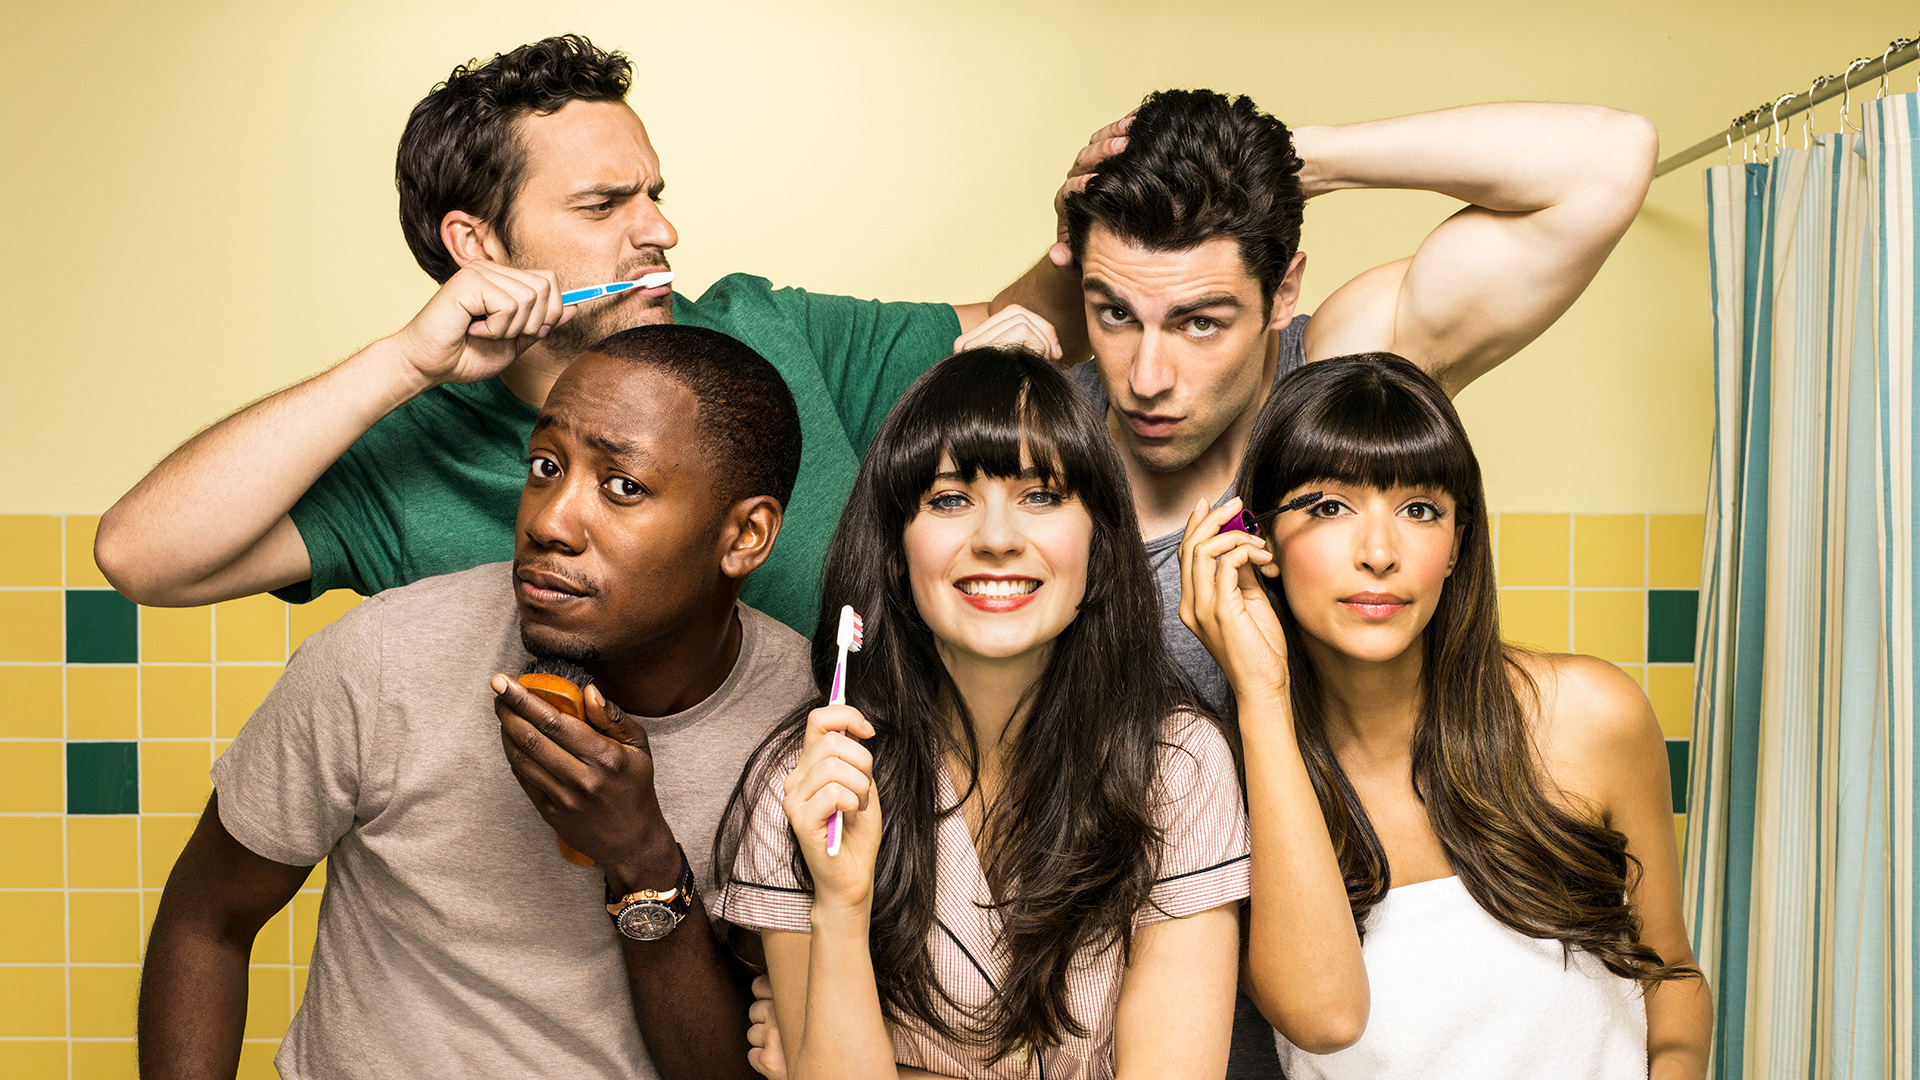 New Girl Wallpaper